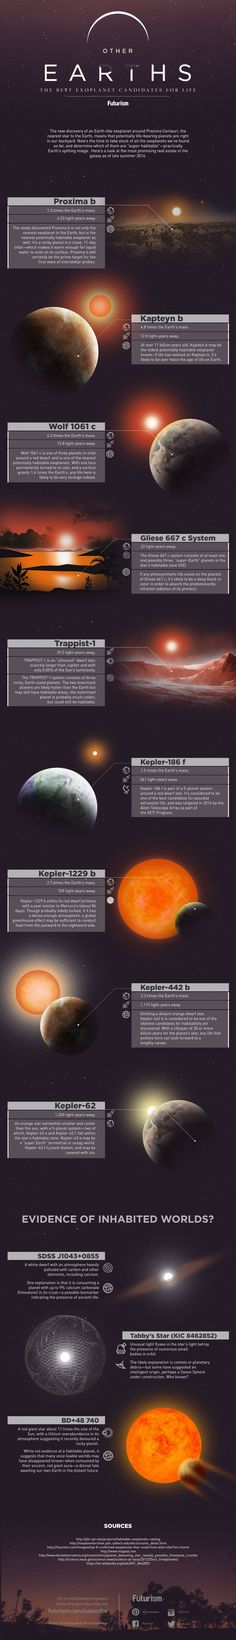 """Scientists Have Discovered an Alien Planet That has """"Titanium Skies"""" The discovery of Proxima b means that habitable exoplanets are right in our backyard. Here's a look at the most promising real estate in the galaxy. Cosmos, Earth Science, Science And Nature, New Planet Discovered, Nasa, Space Facts, Planetary Science, Space And Astronomy, Astronomy Facts"""